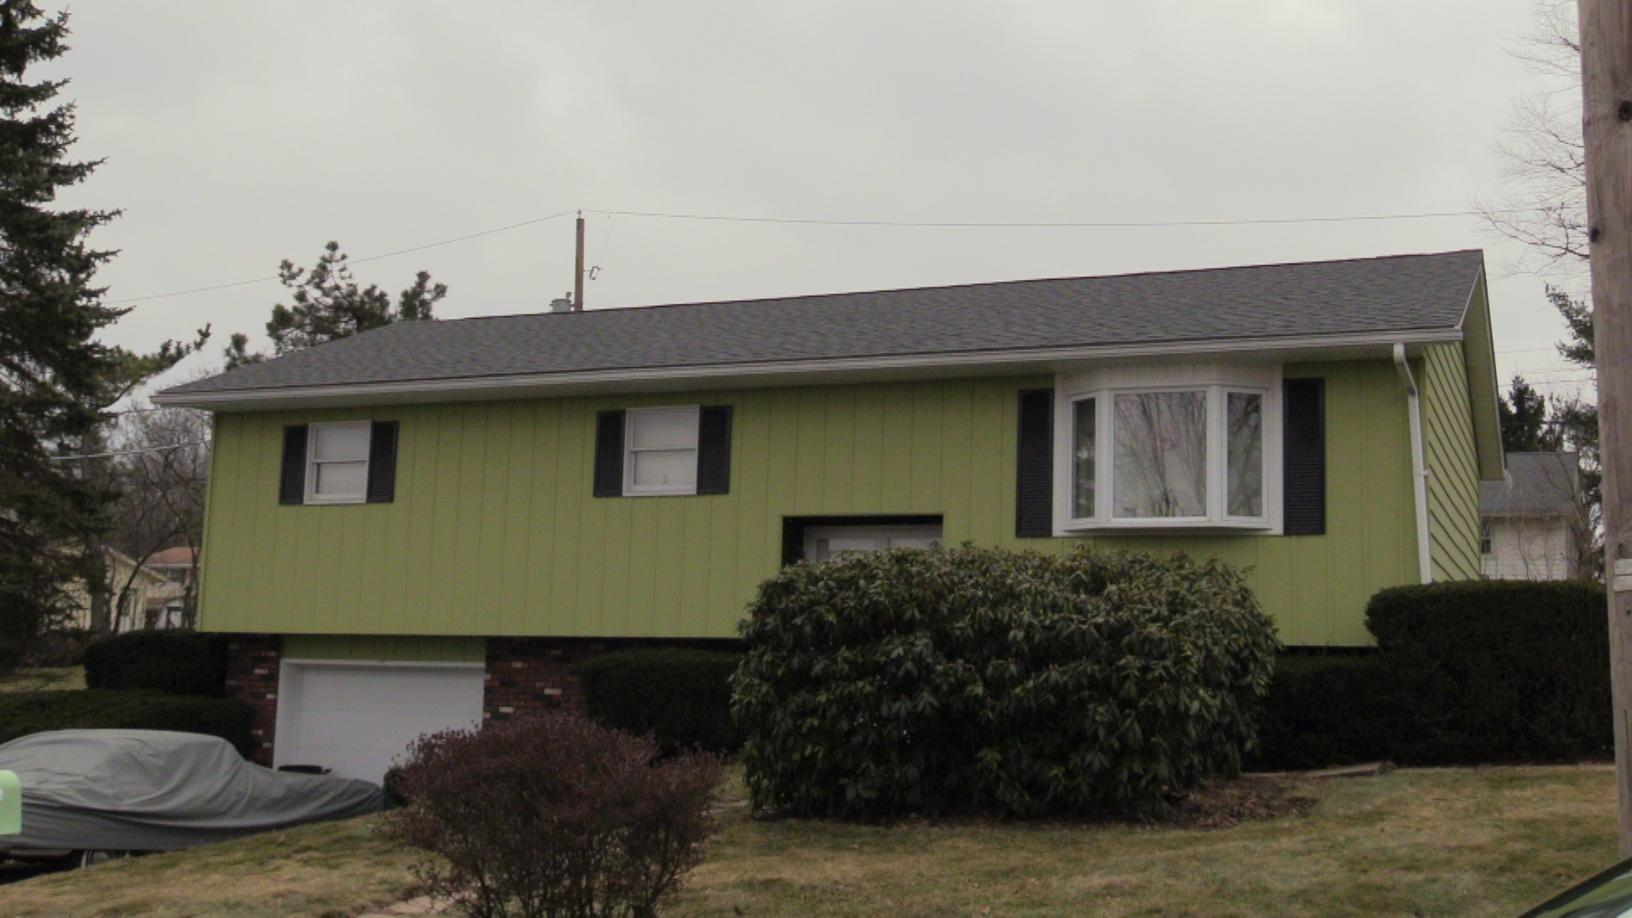 Pottsville, PA | Roof Replacement Provided By Pinnacle Exteriors - After Photo